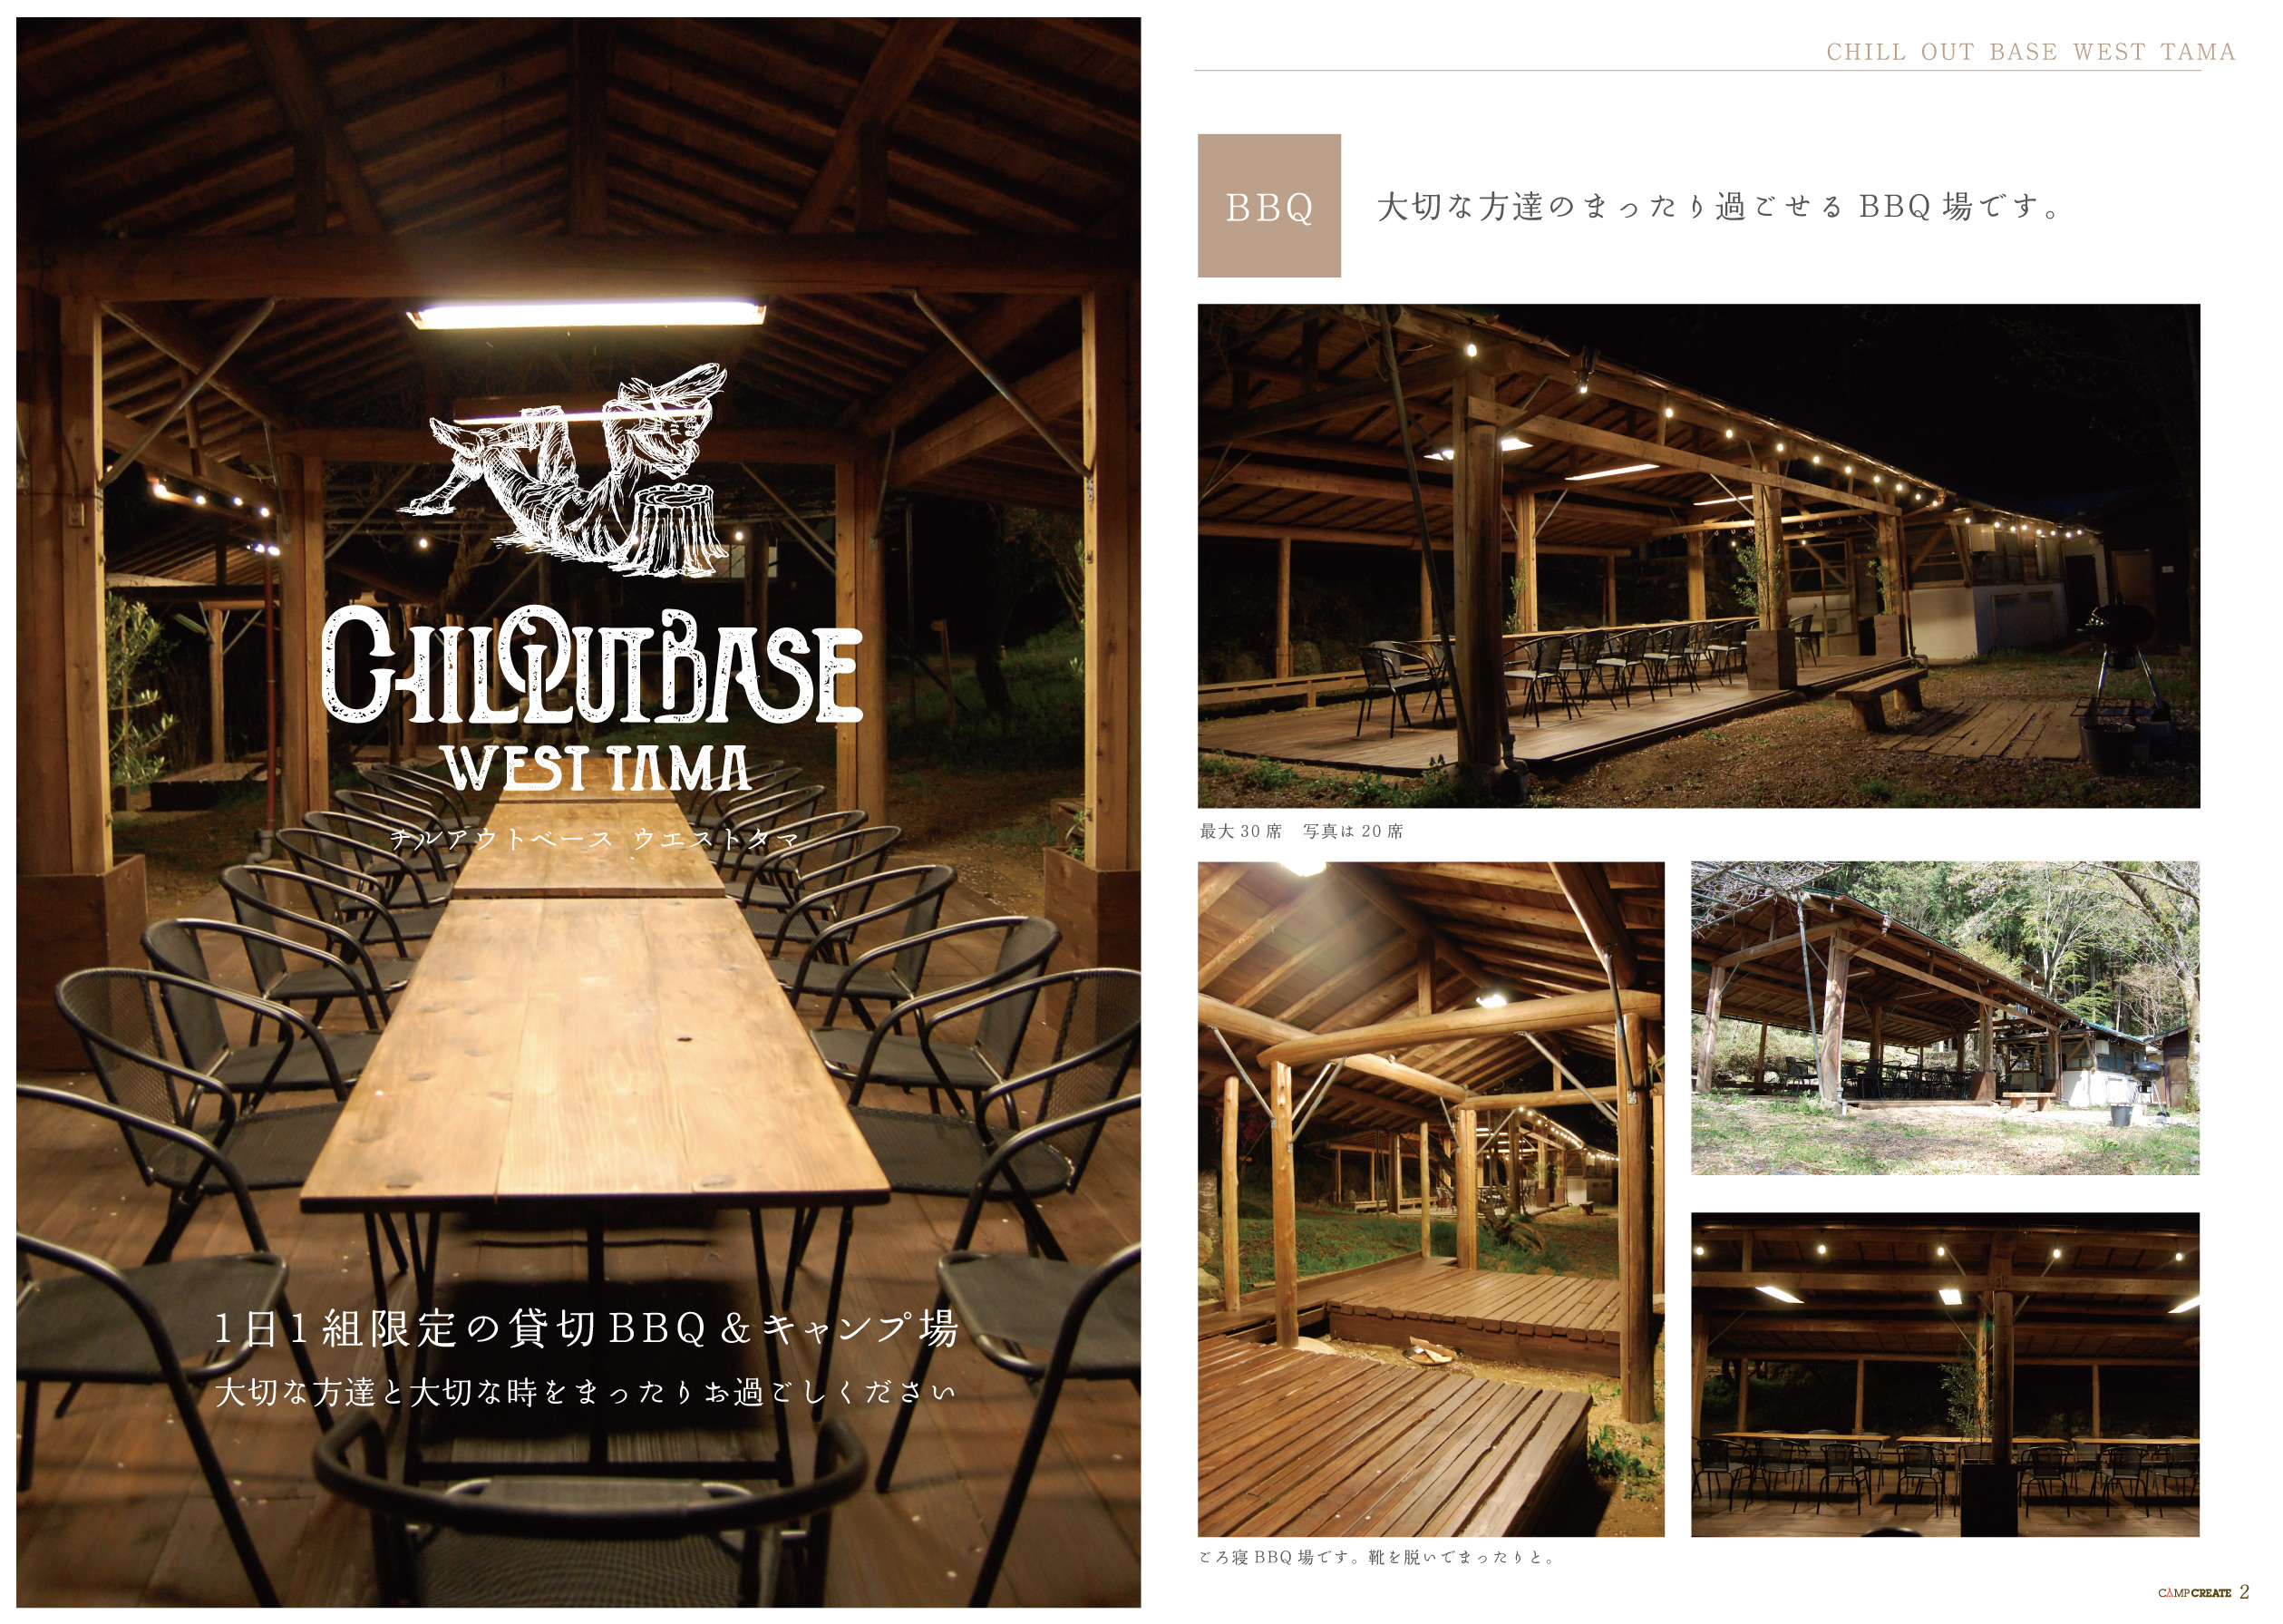 chill out base west tama キャンプクリエイト